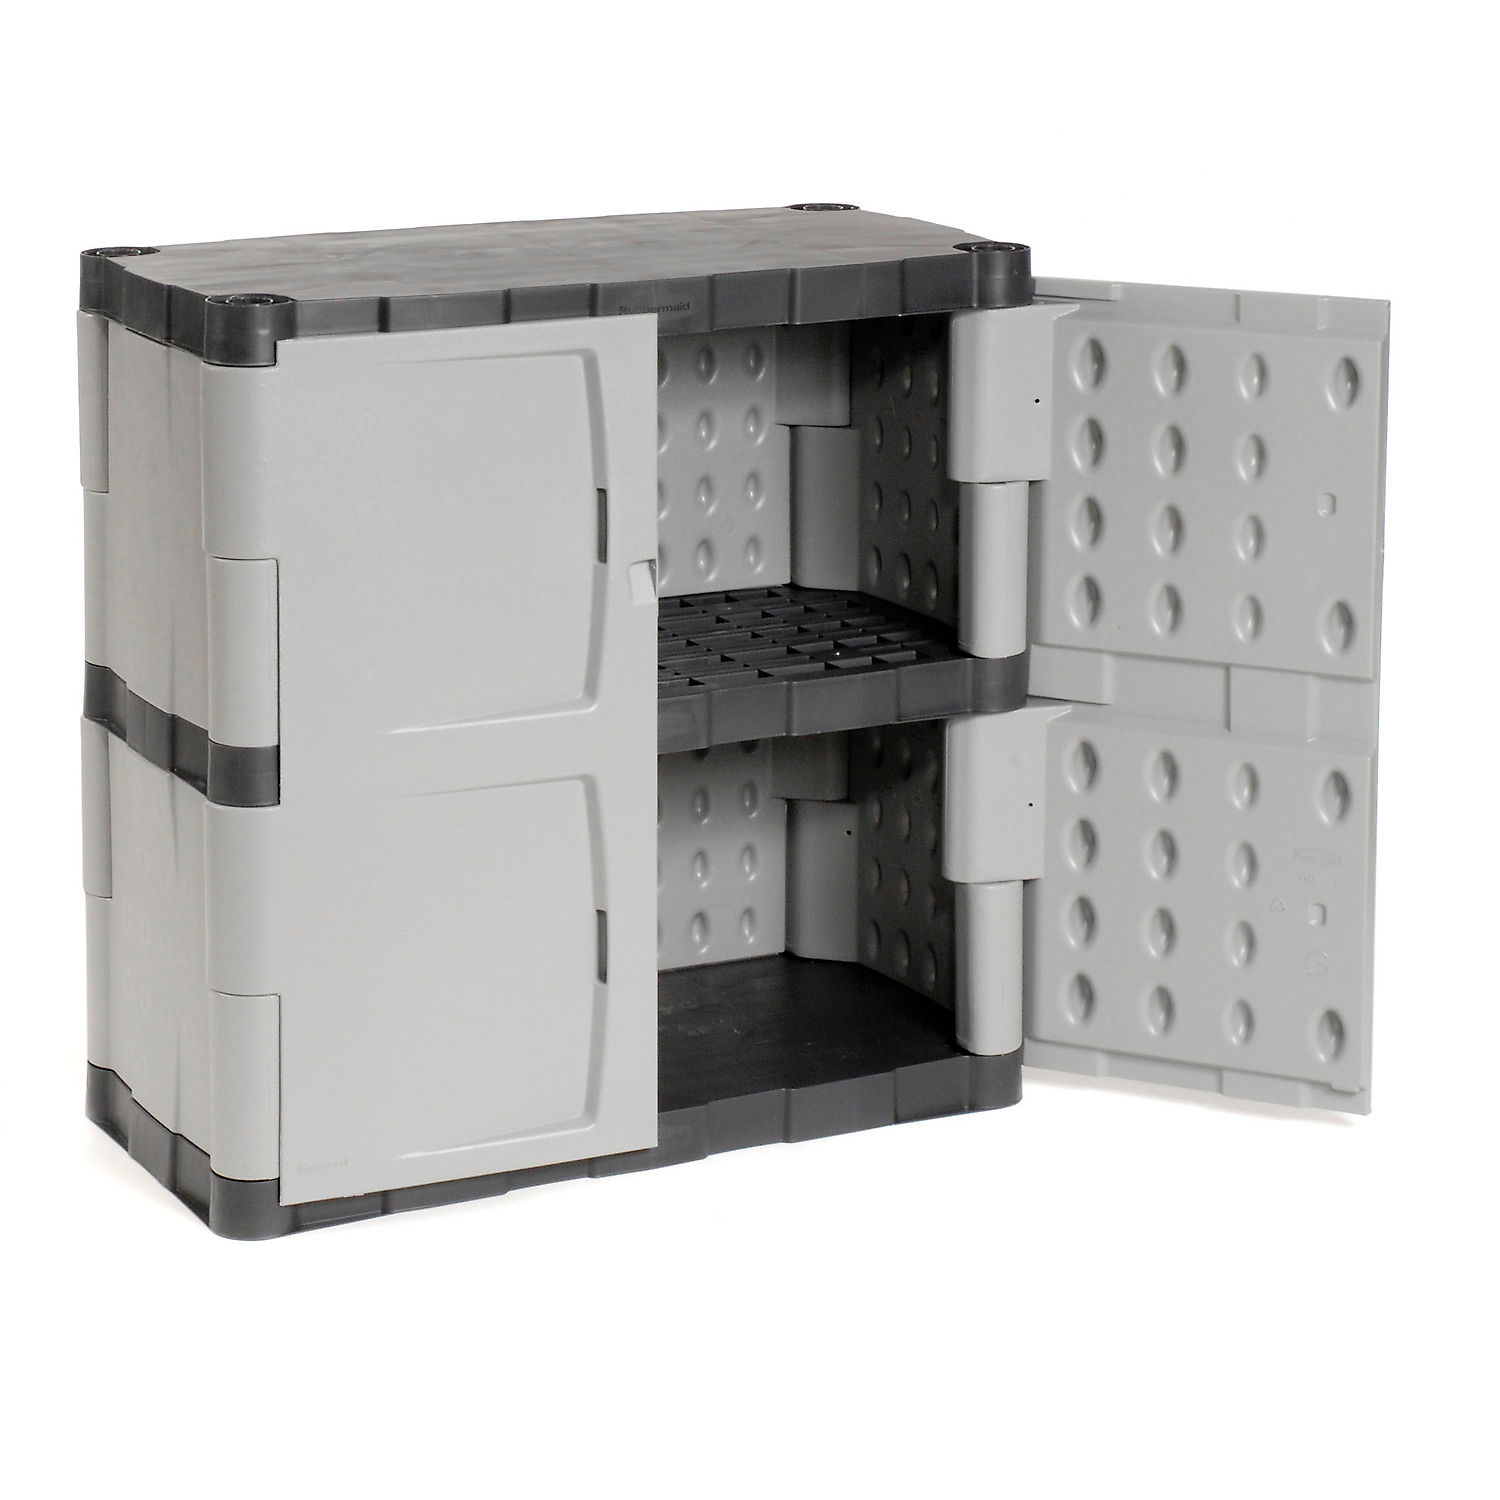 Rubbermaid 7085 Plastic Storage Cabinet